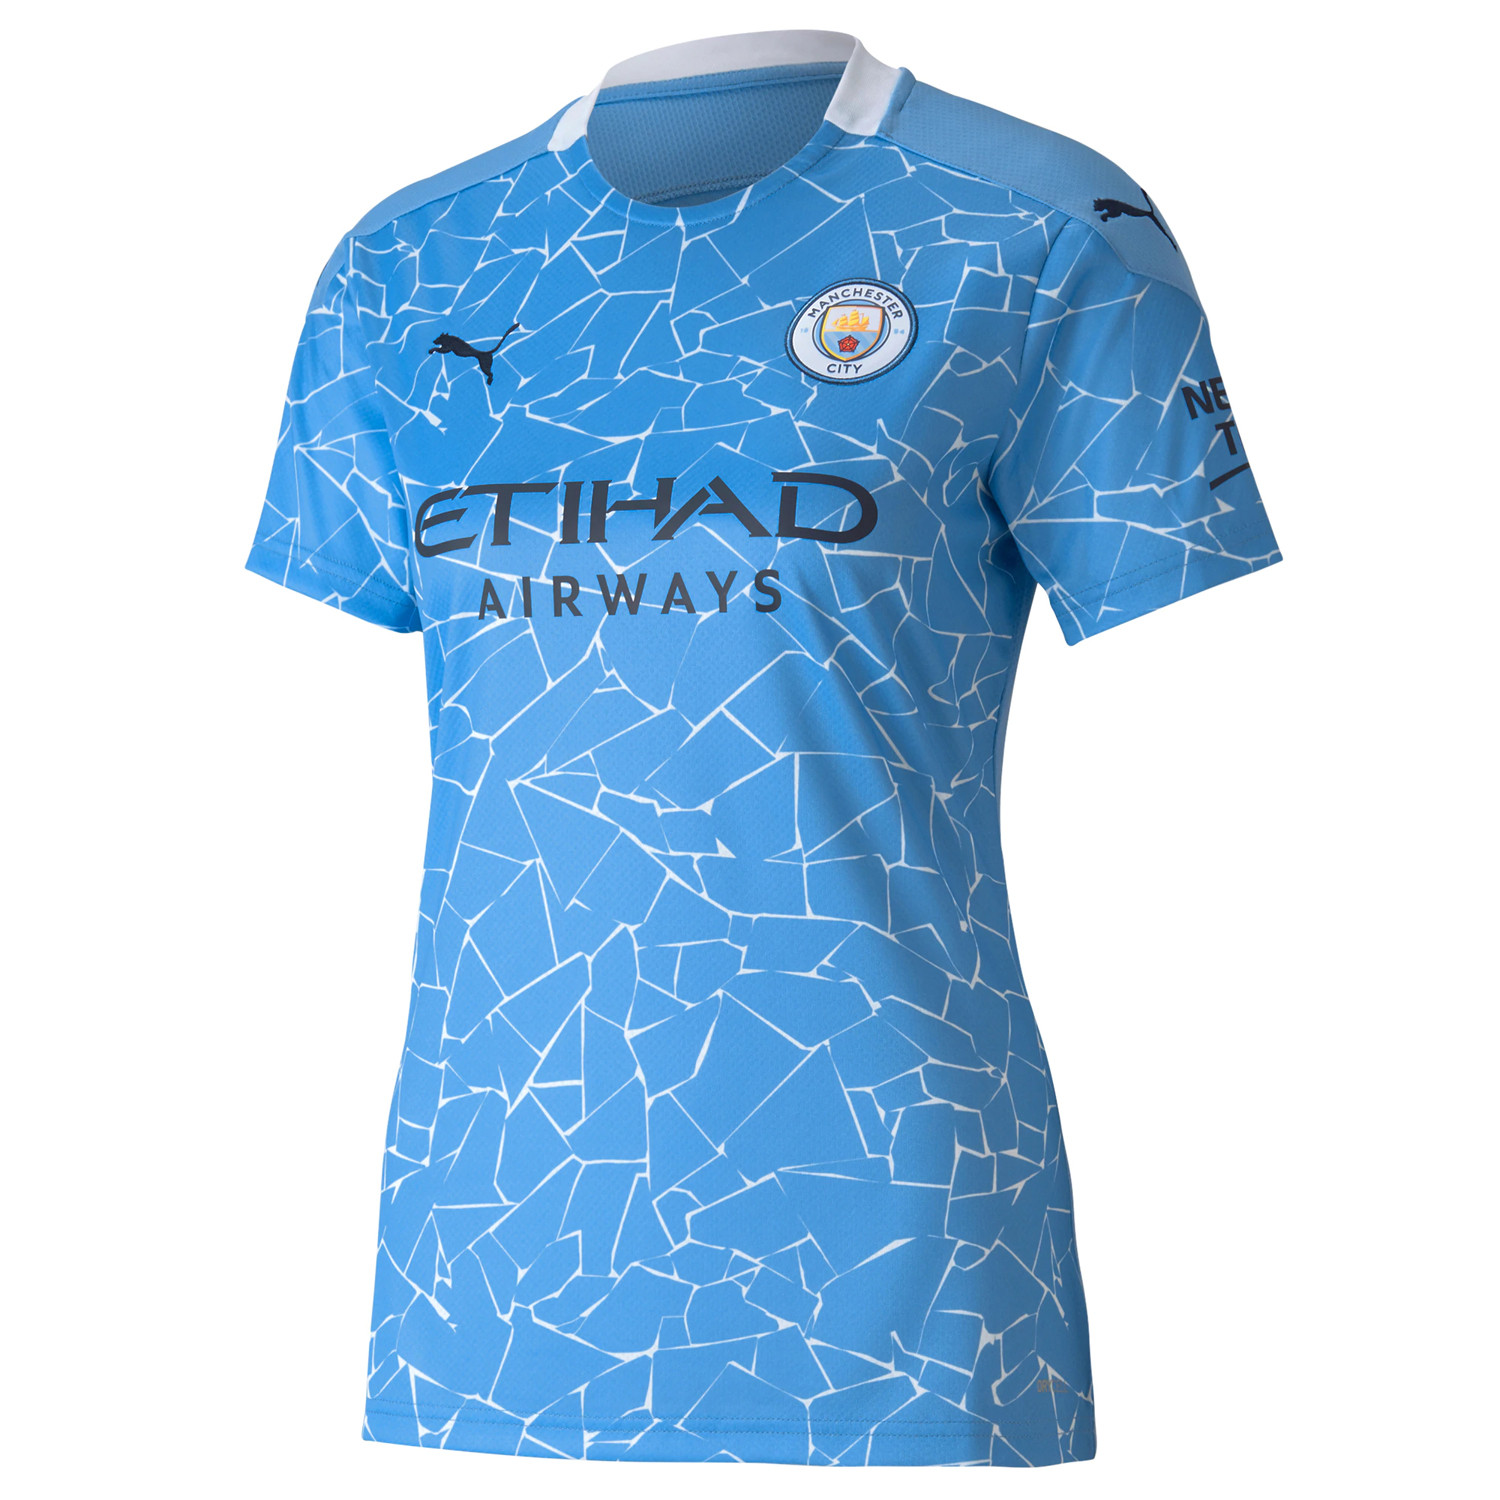 US$ 14.80 - Manchester City Home Jersey Womens 2020/21 ...